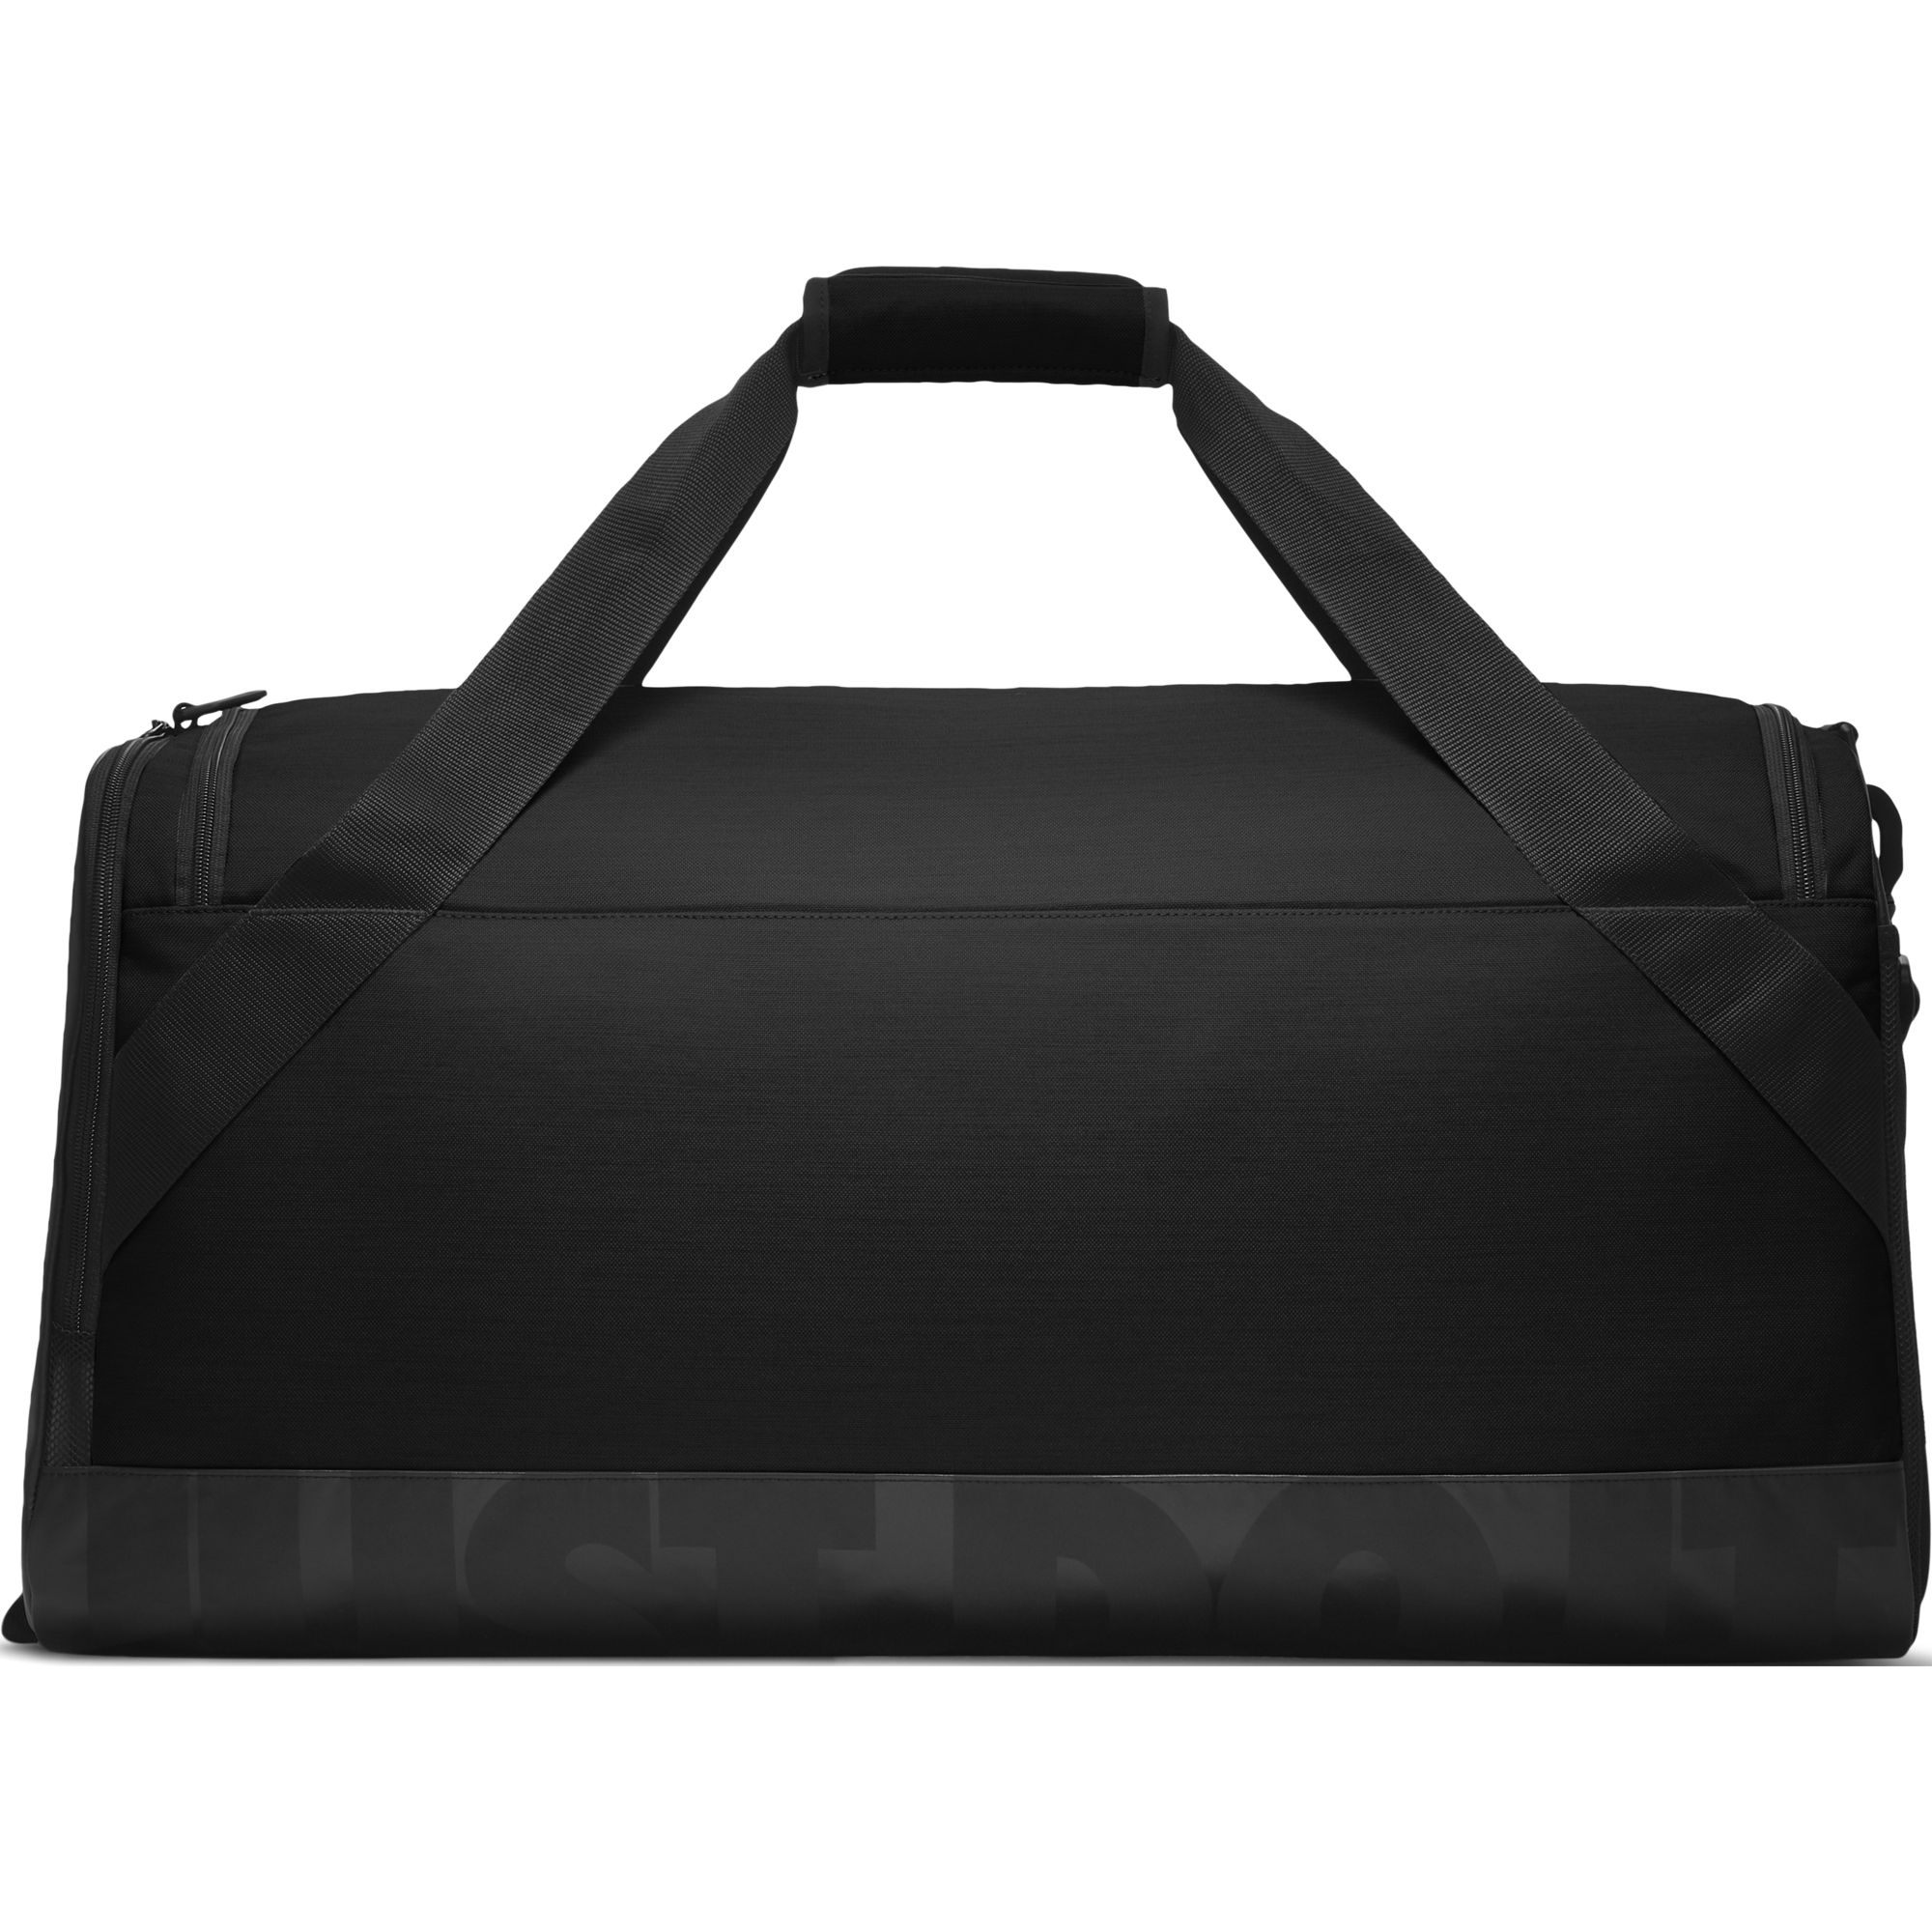 ... torba Nike Brasilia (Large) Training Duffel Bag BA5333 010 ... e44b24a70be55